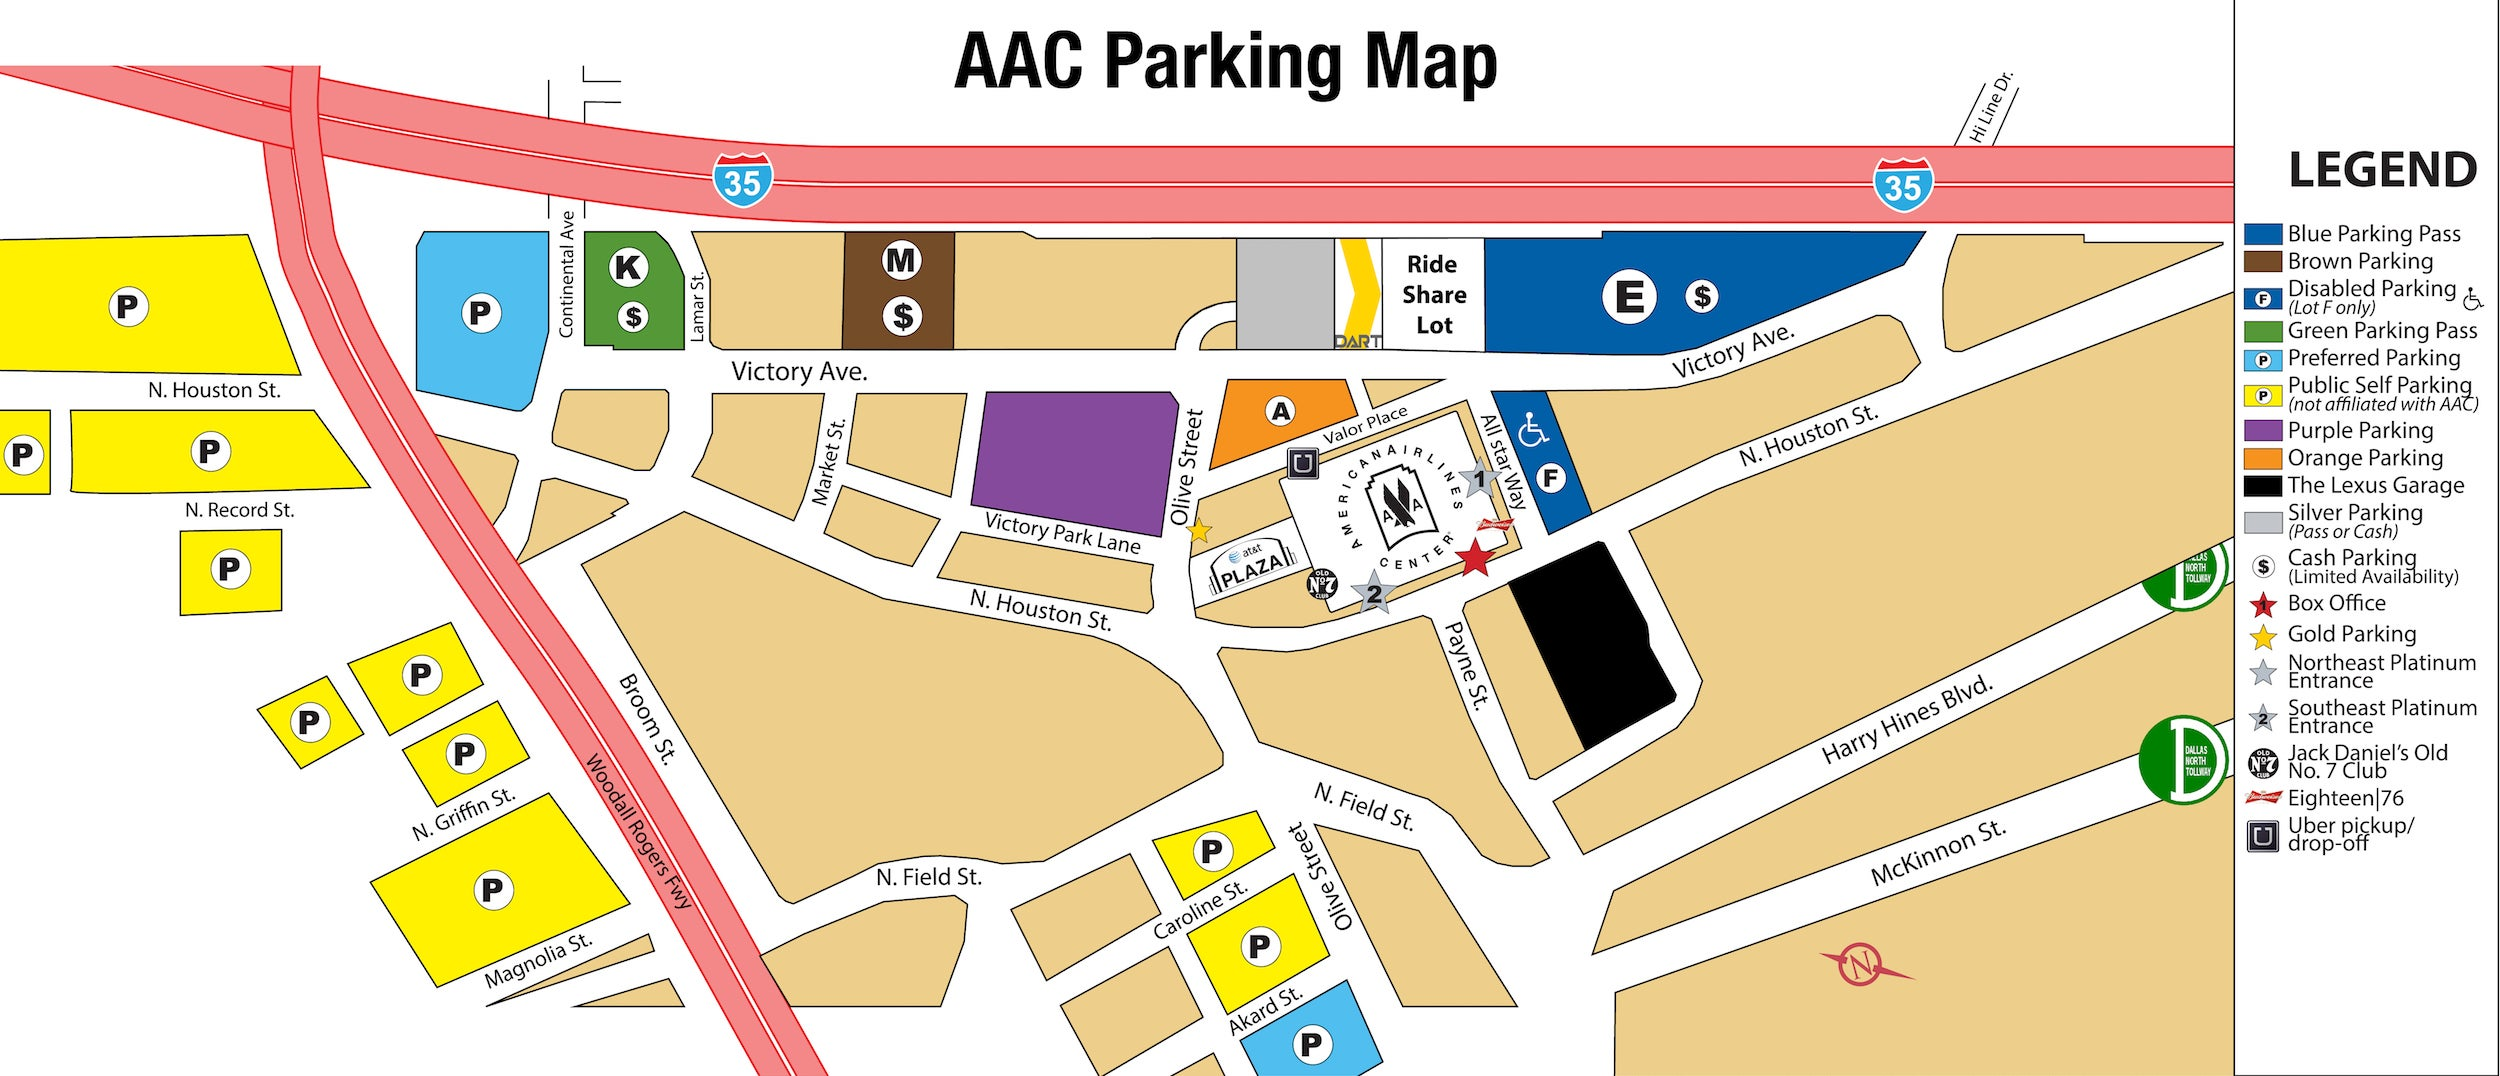 Parking | American Airlines Center